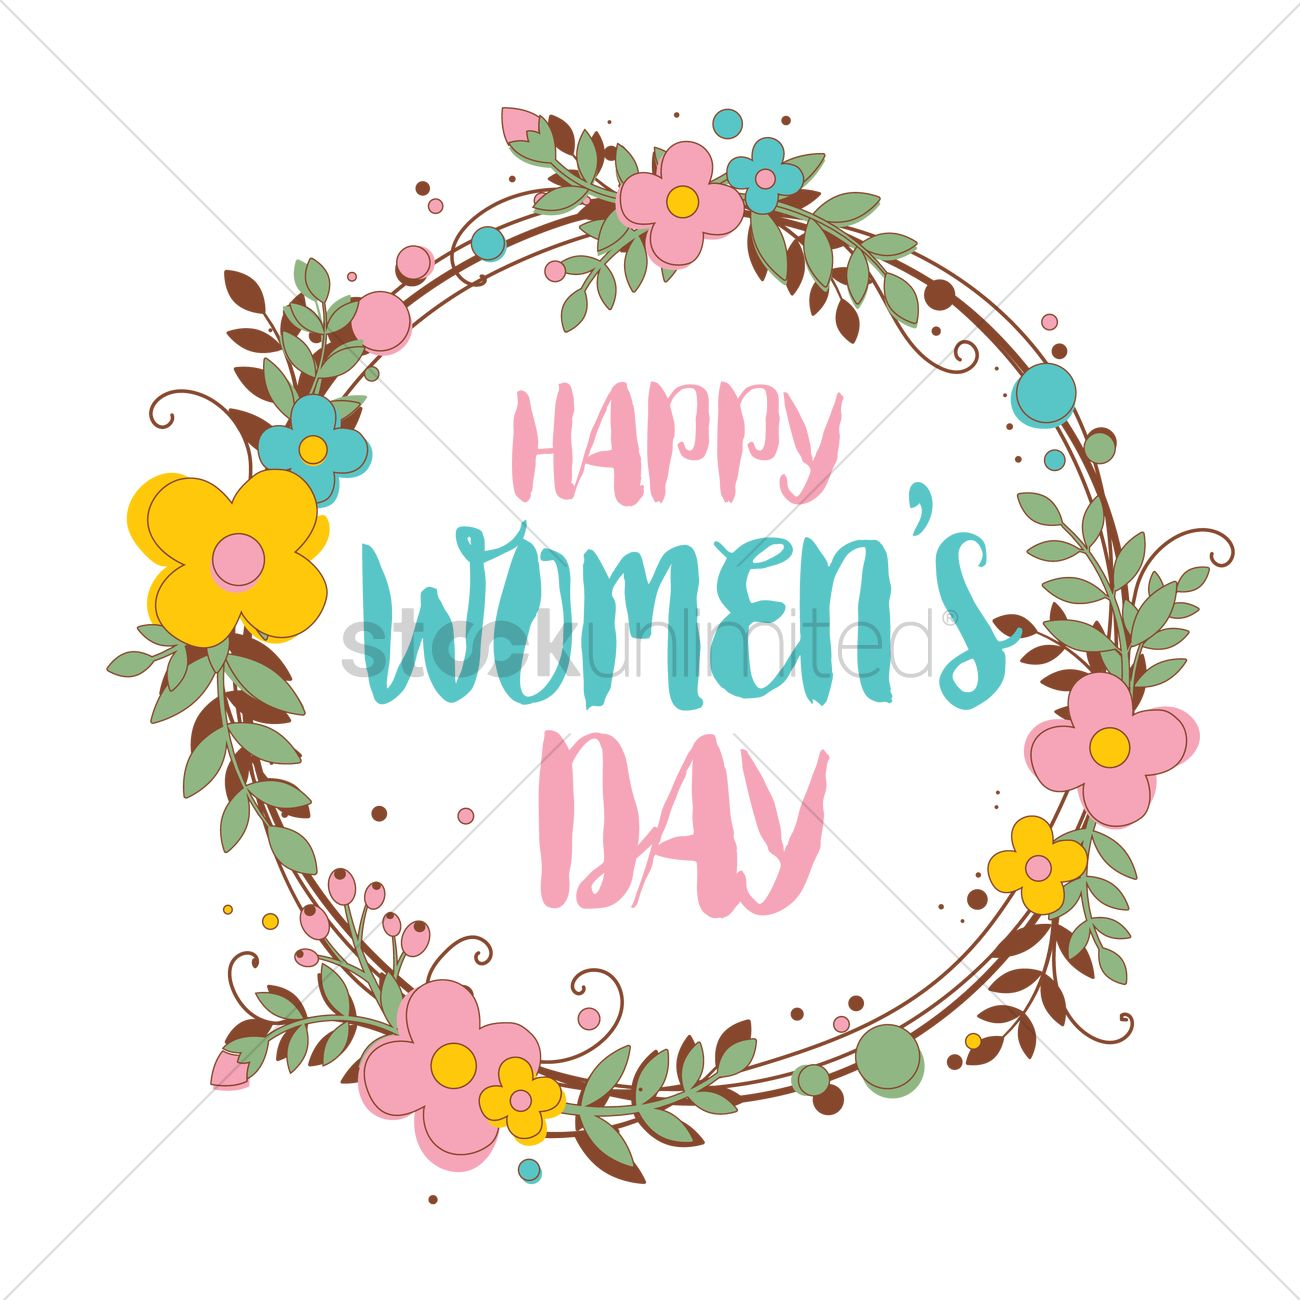 Womens day clipart 4 » Clipart Station.